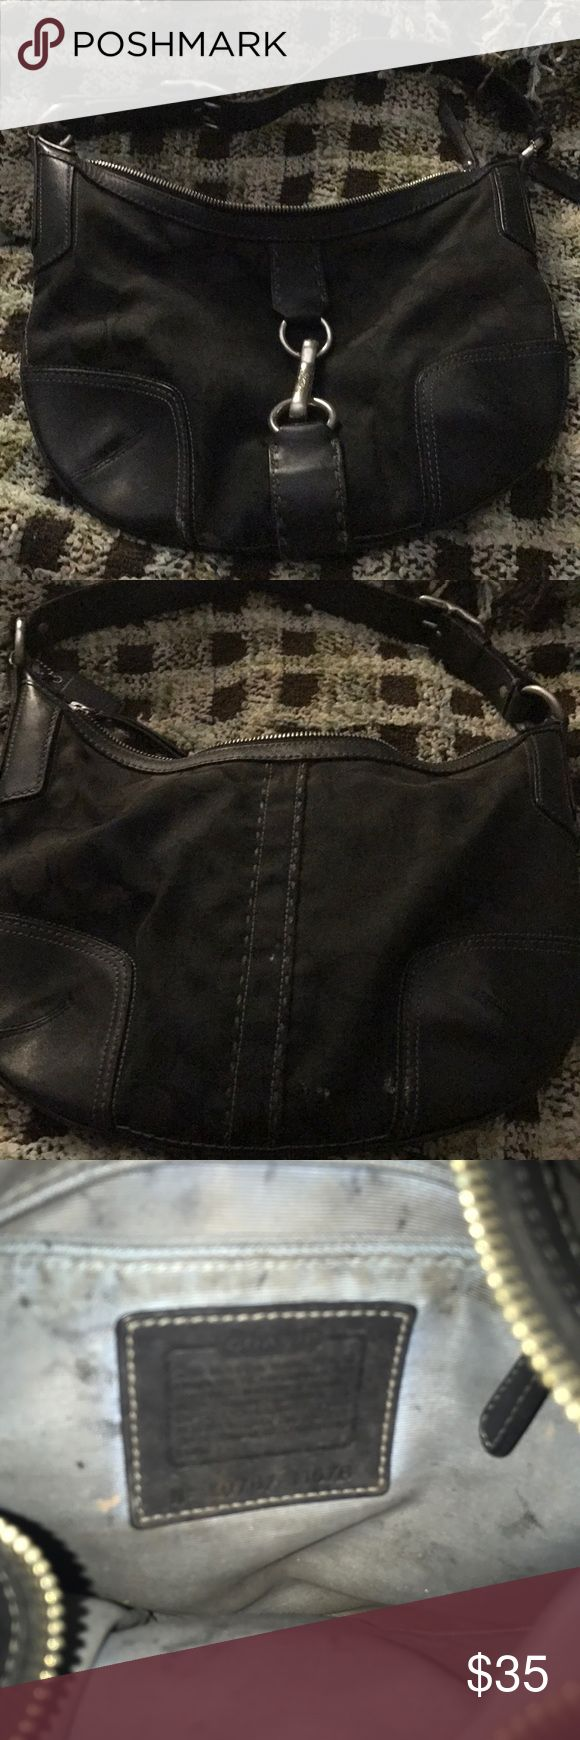 Black Coach purse Black Coach purse. Used but in good condition Coach Bags Shoulder Bags